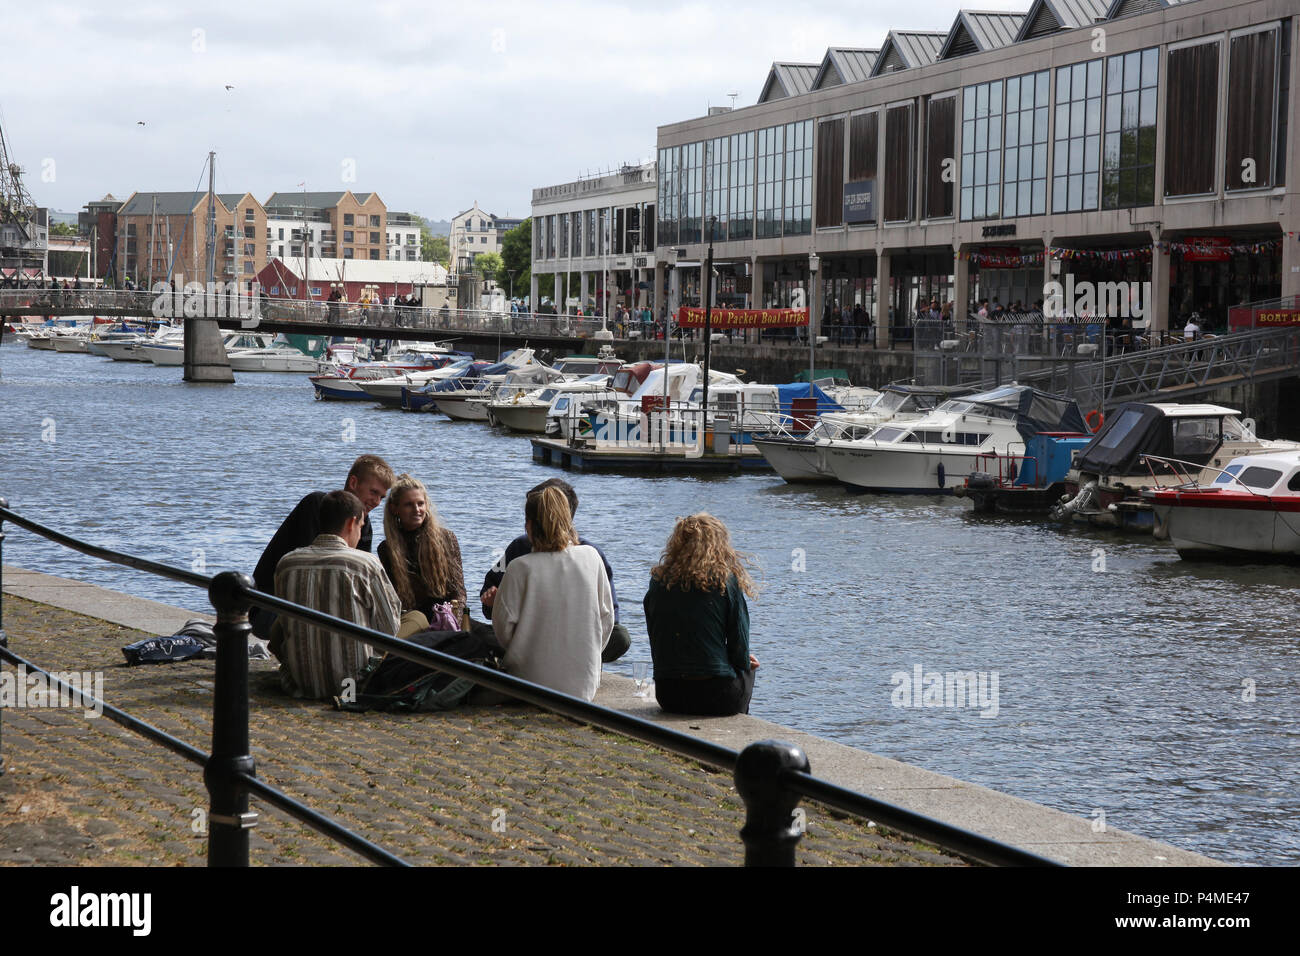 Young people sit together chatting at Broad Quay, Bristol, England. - Stock Image